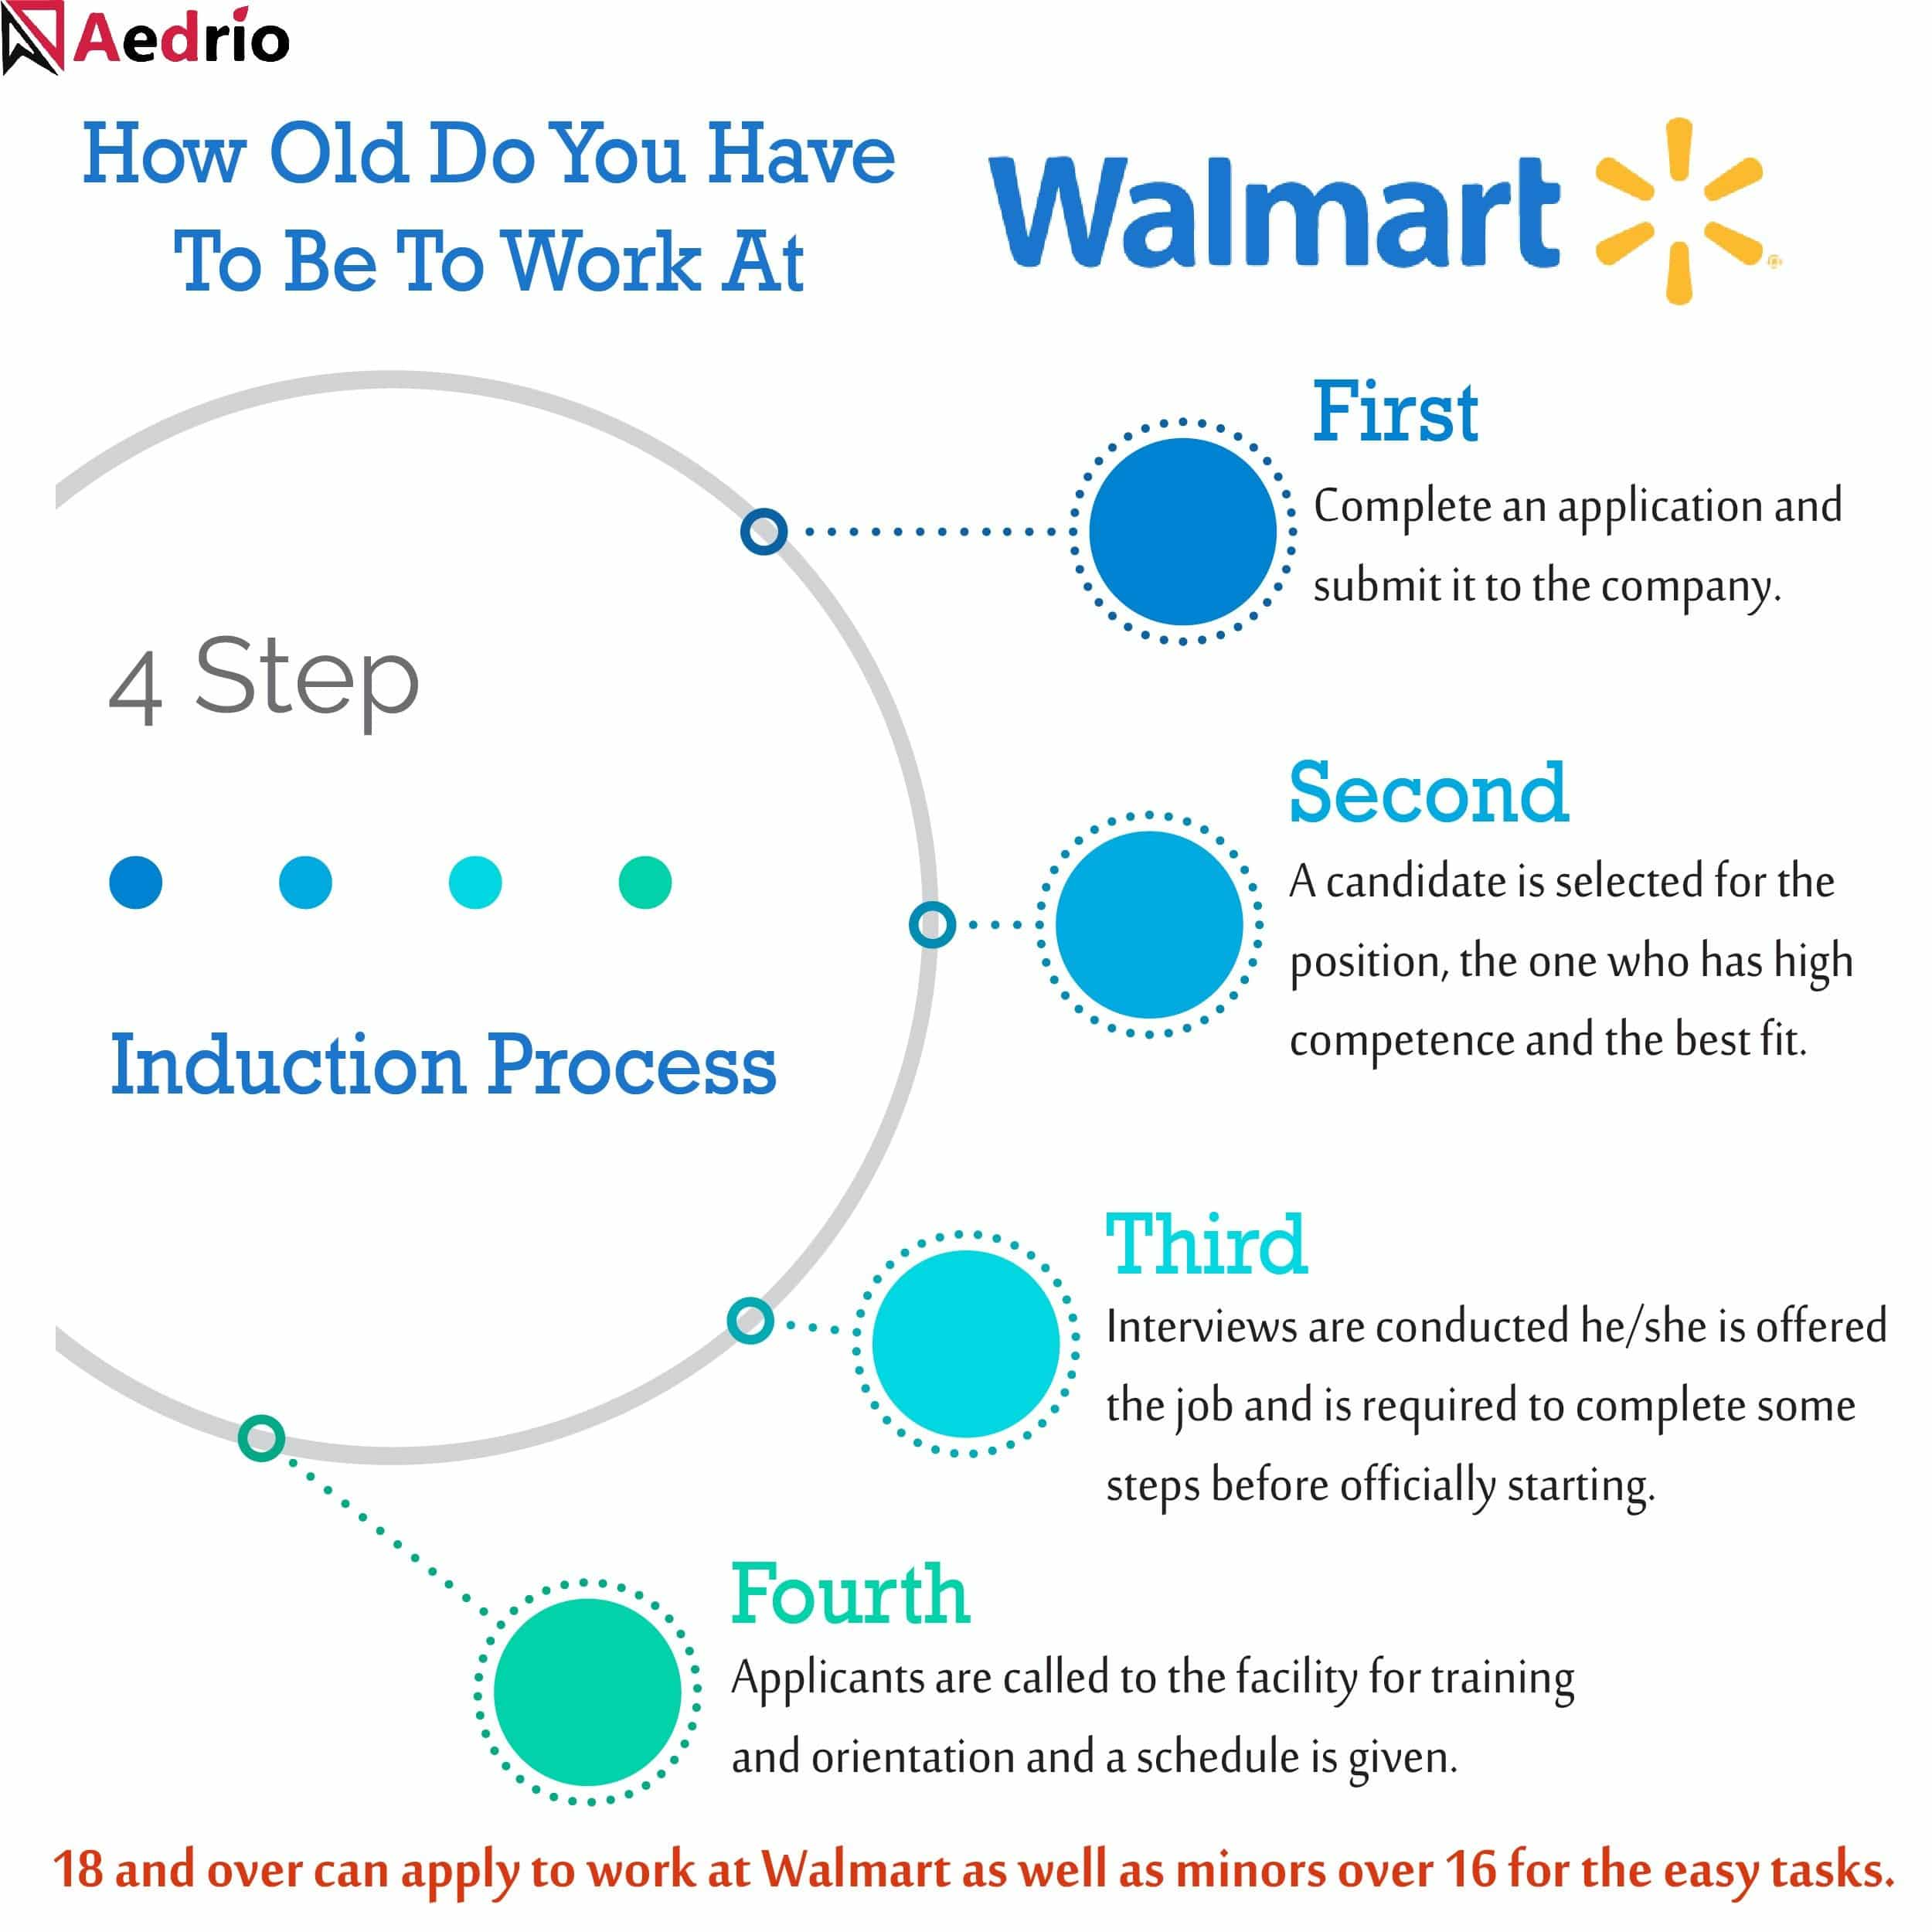 how old do you have to be to work at walmart - aedrio